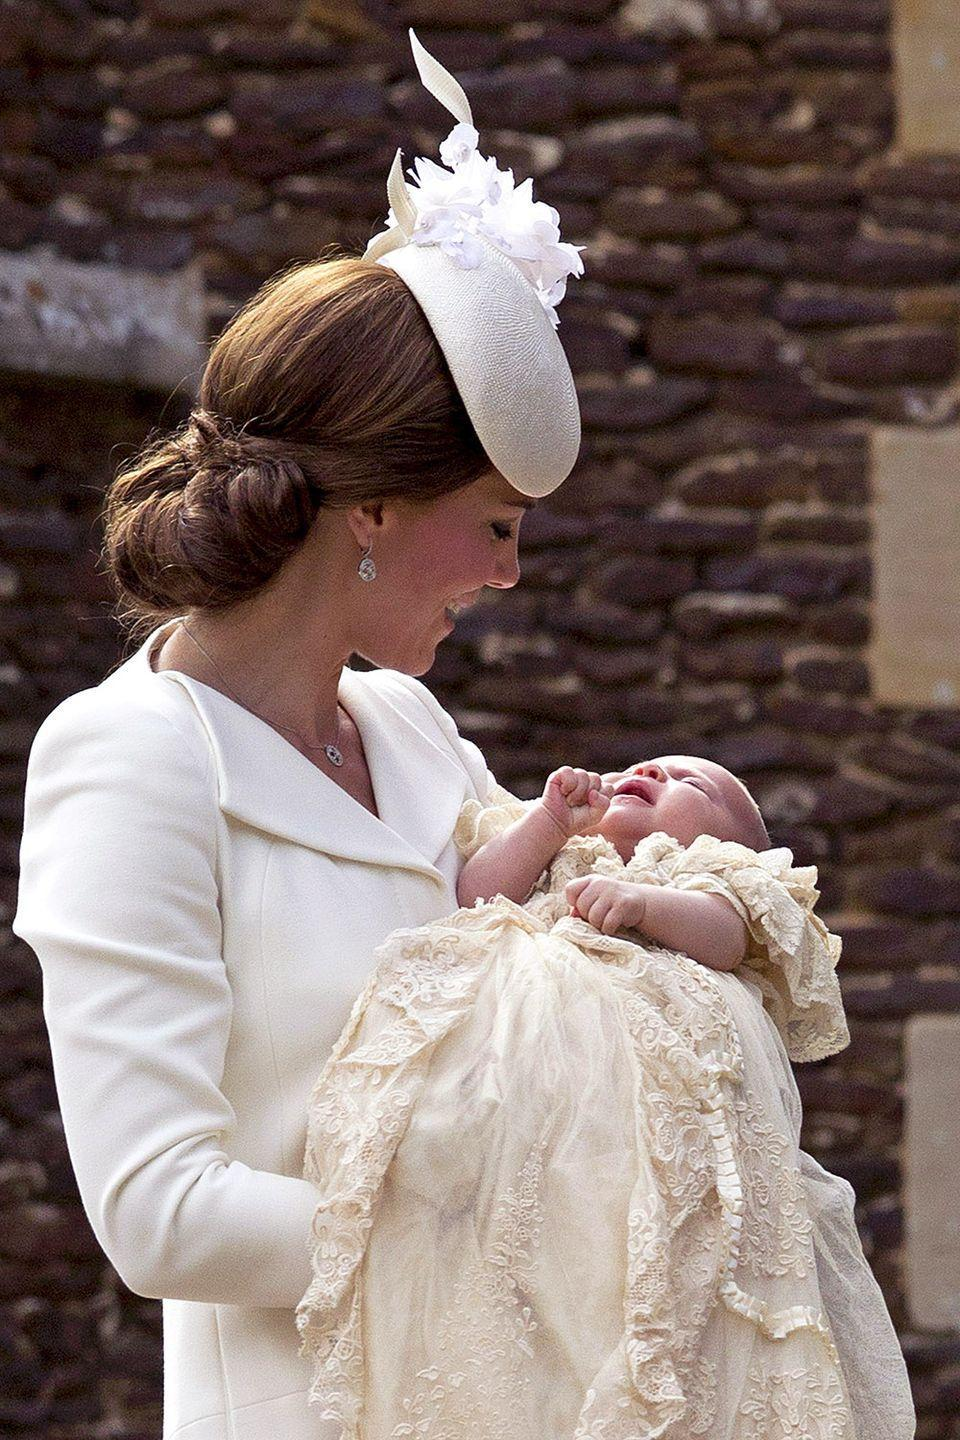 """<p>Aside from the <a href=""""http://www.cnn.com/2015/07/02/europe/royal-baby-princess-charlotte-christening/index.html"""" rel=""""nofollow noopener"""" target=""""_blank"""" data-ylk=""""slk:after-party"""" class=""""link rapid-noclick-resp"""">after-party</a>, of course. However, with Princess Charlotte the royal family <a href=""""http://www.dailymail.co.uk/news/article-3149651/Selfie-ban-lifted-new-people-s-Princess-Duke-Duchess-Cambridge-break-Royal-tradition-allow-public-snaps-Charlotte-s-Christening.html"""" rel=""""nofollow noopener"""" target=""""_blank"""" data-ylk=""""slk:broke this tradition"""" class=""""link rapid-noclick-resp"""">broke this tradition</a> and allowed the public to take selfies. </p>"""